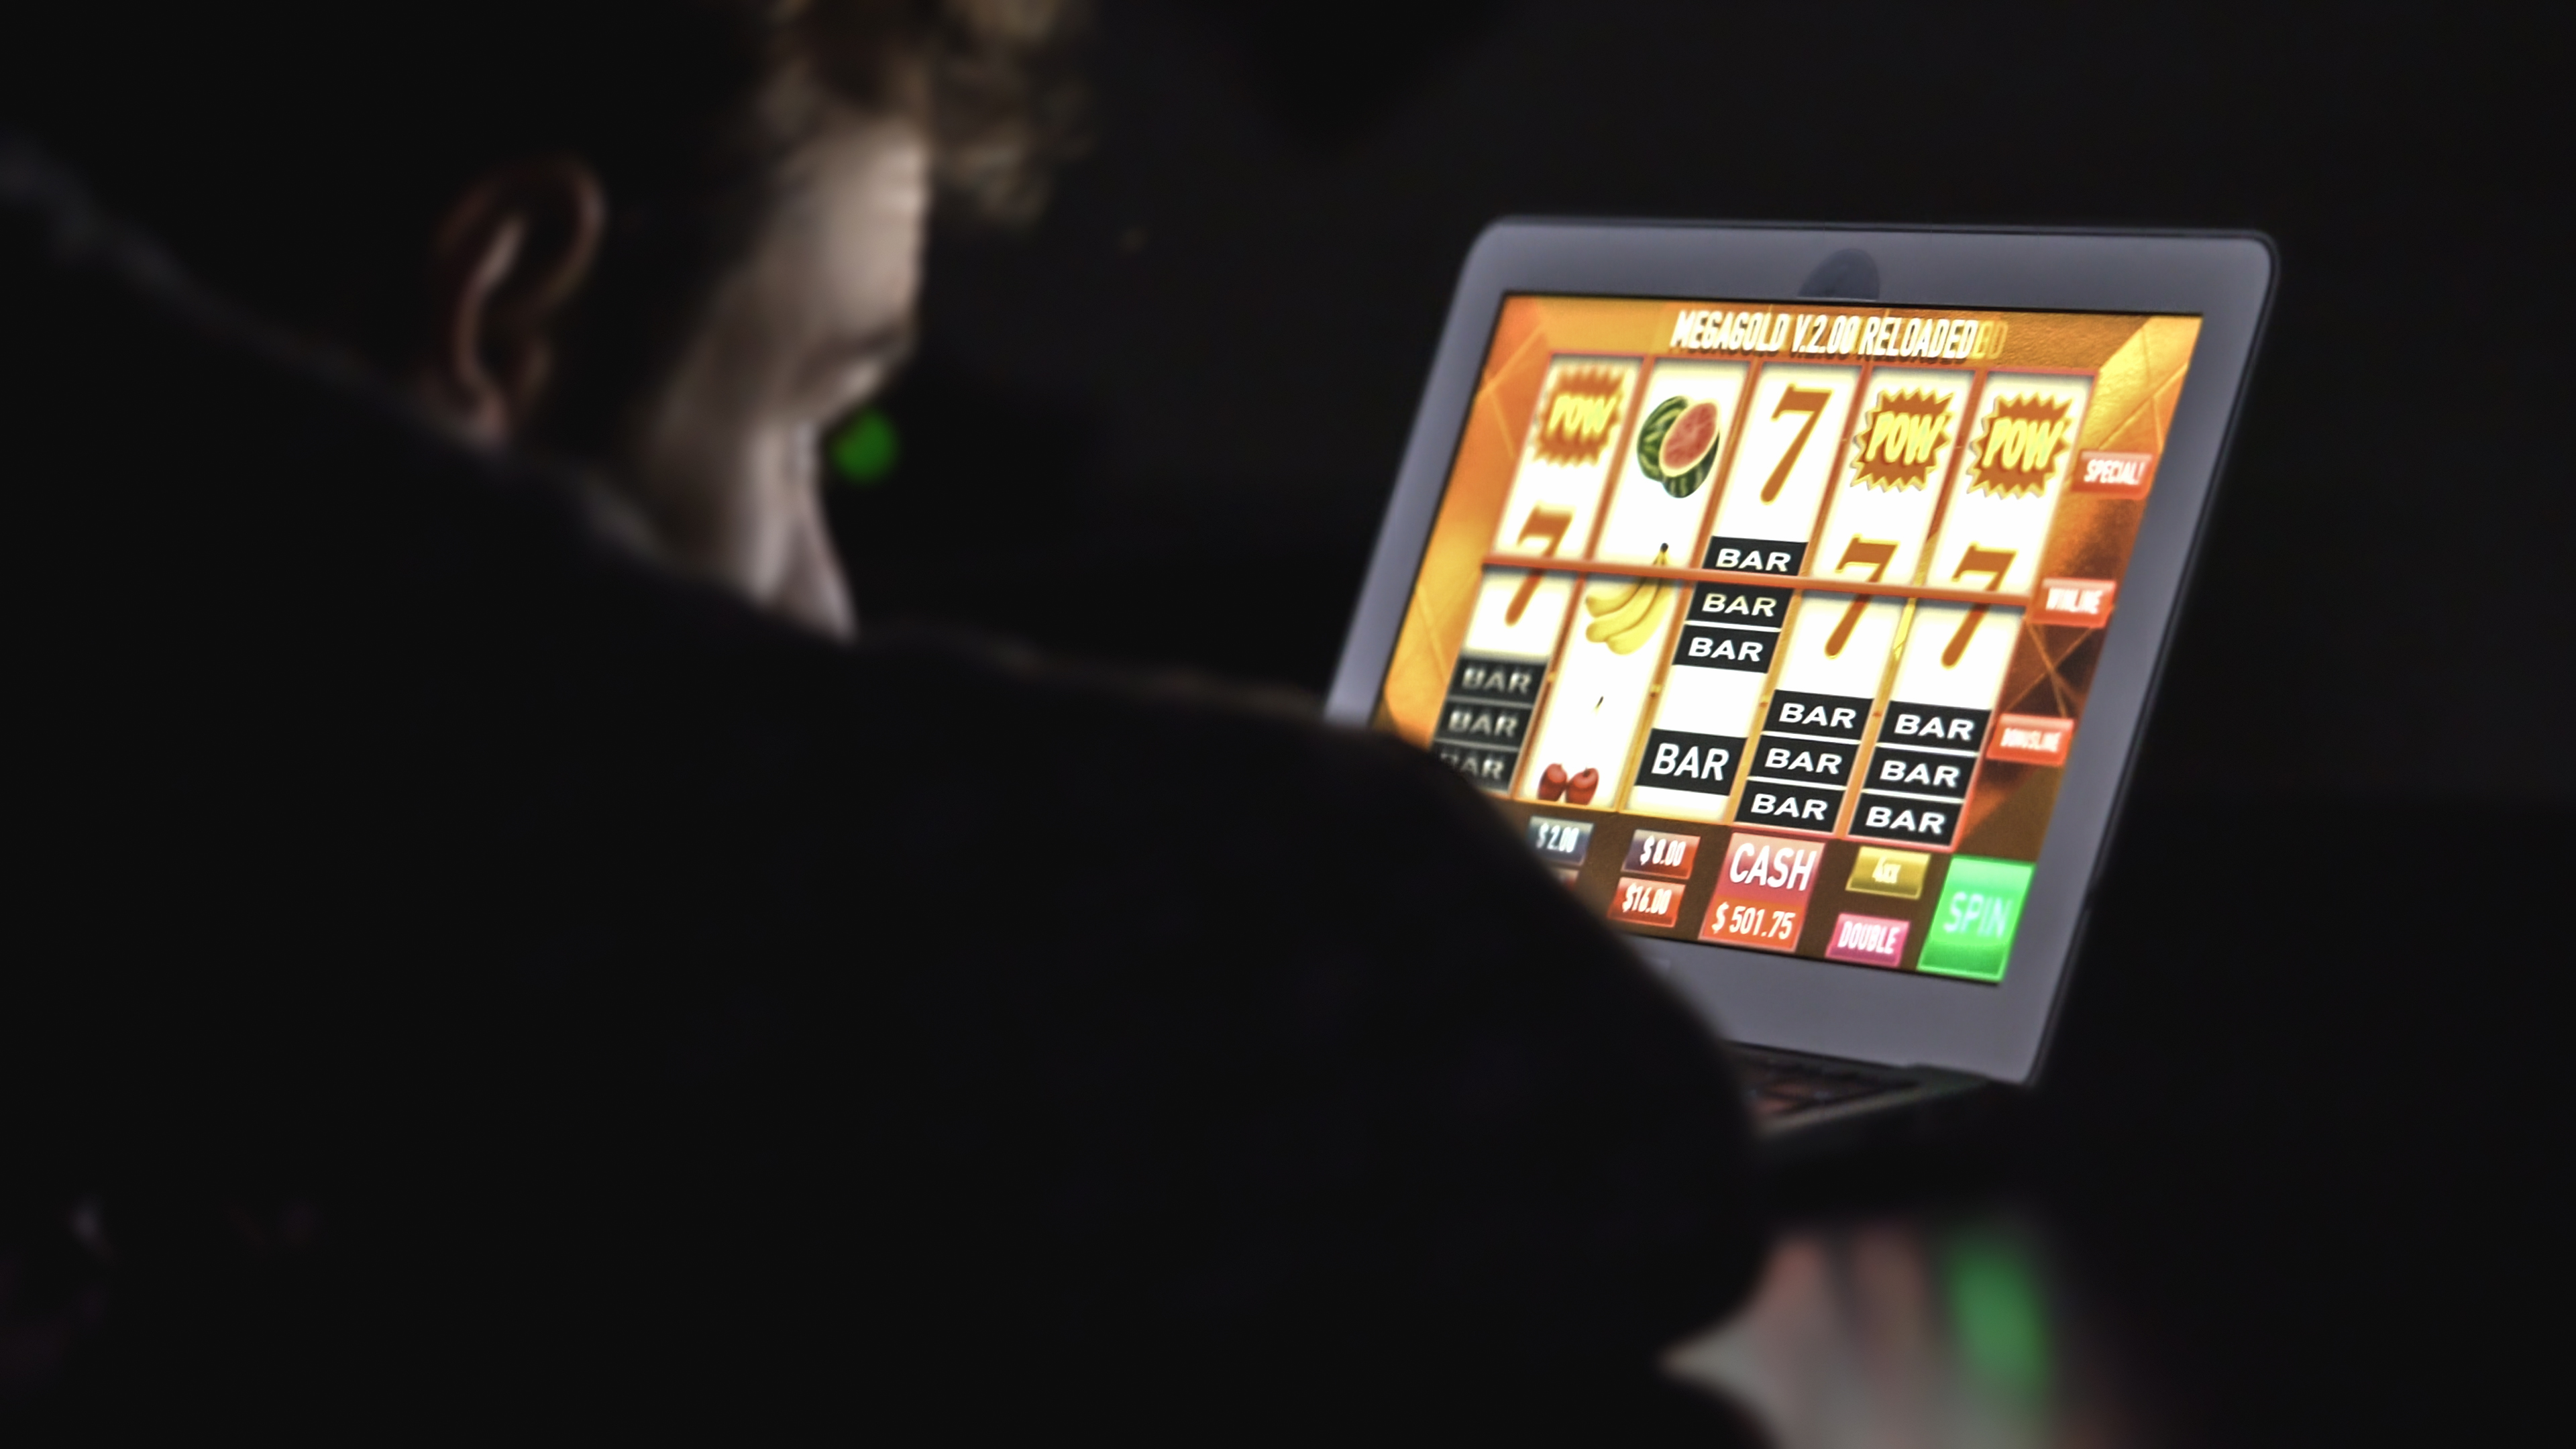 Gambling addicted man in front of online casino slot machine on laptop computer at night.